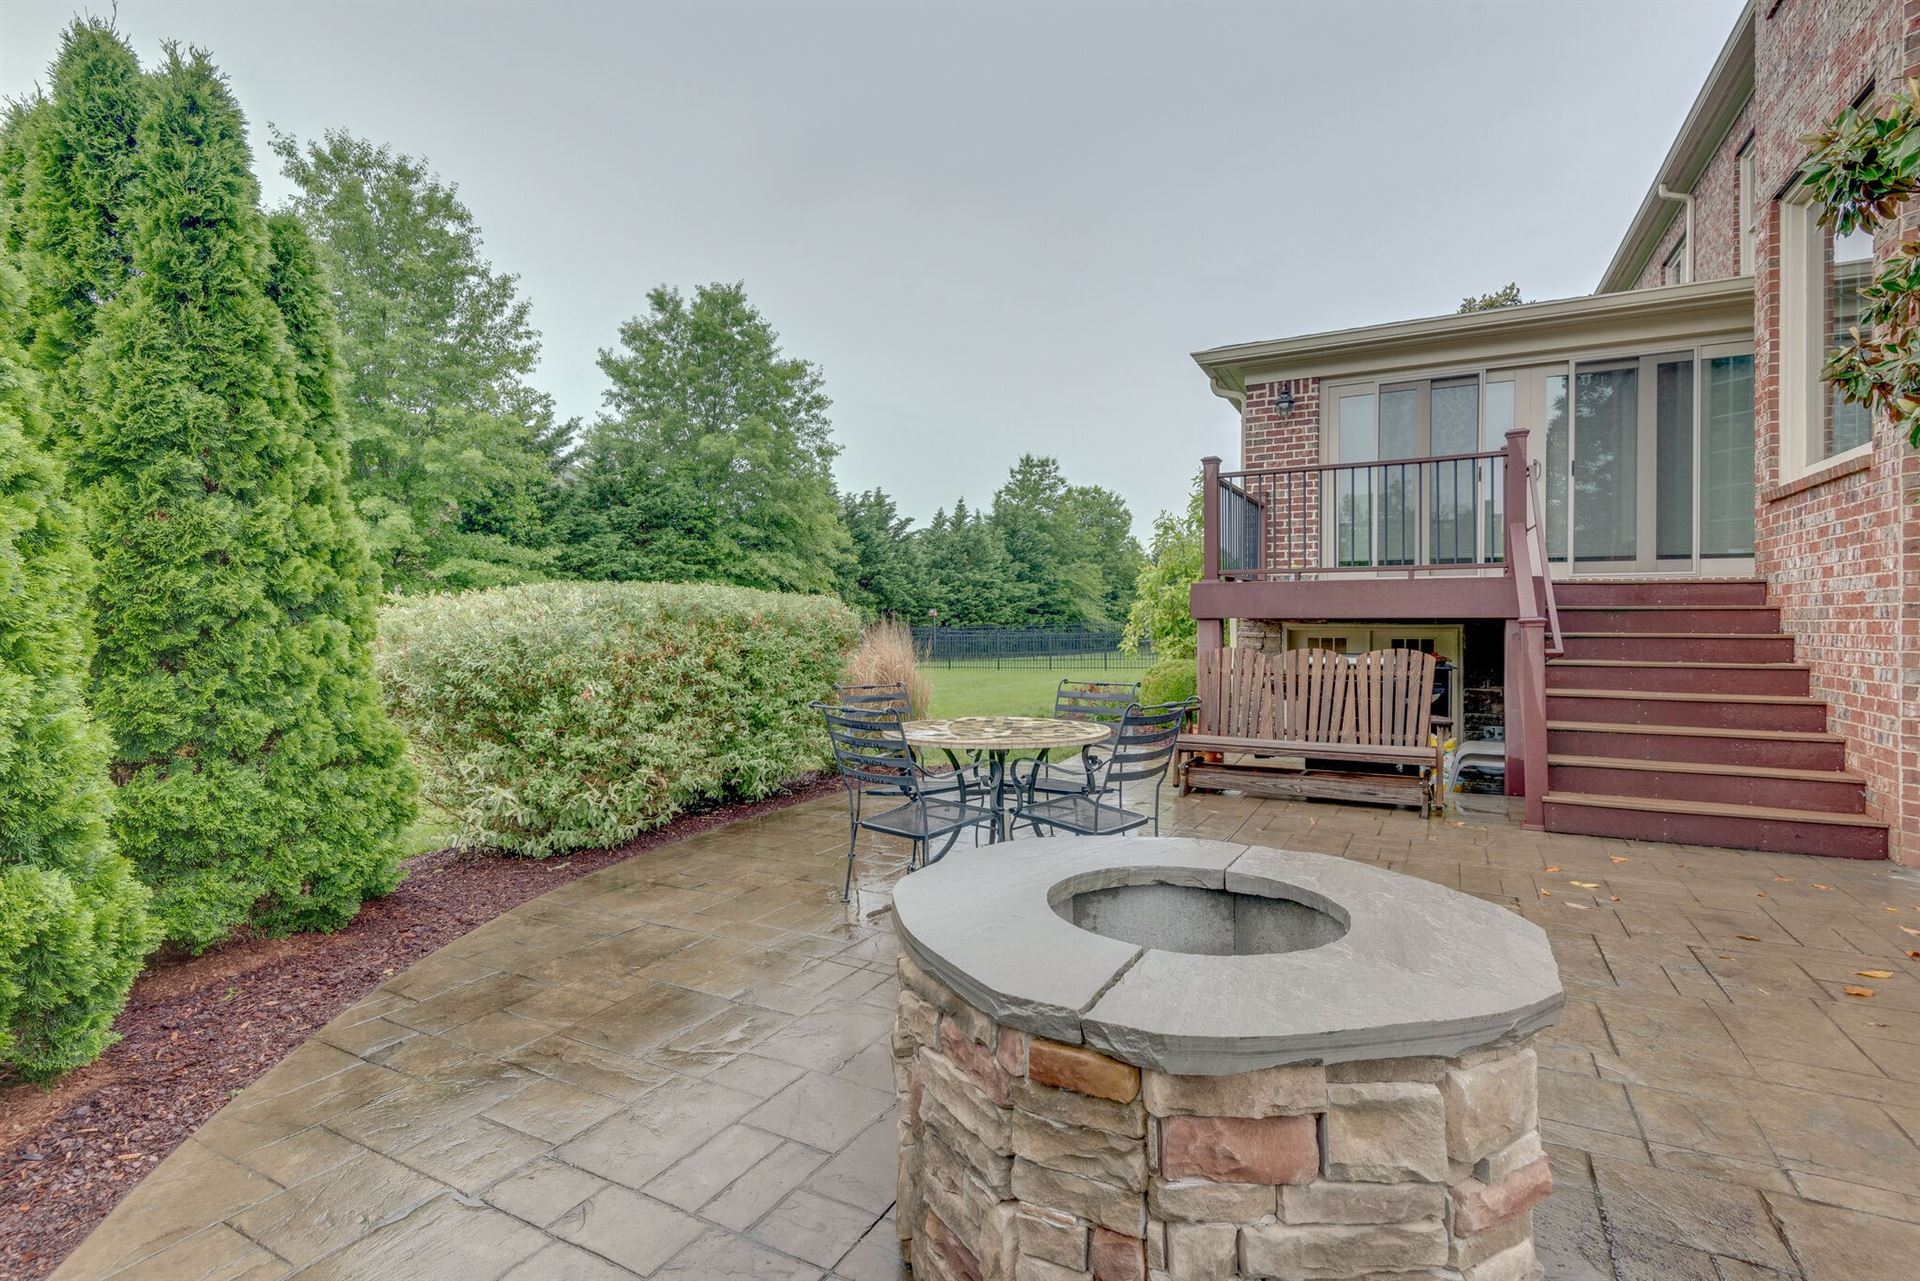 Photo of 9513 Wexcroft Dr, Brentwood, TN 37027 (MLS # 2152508)